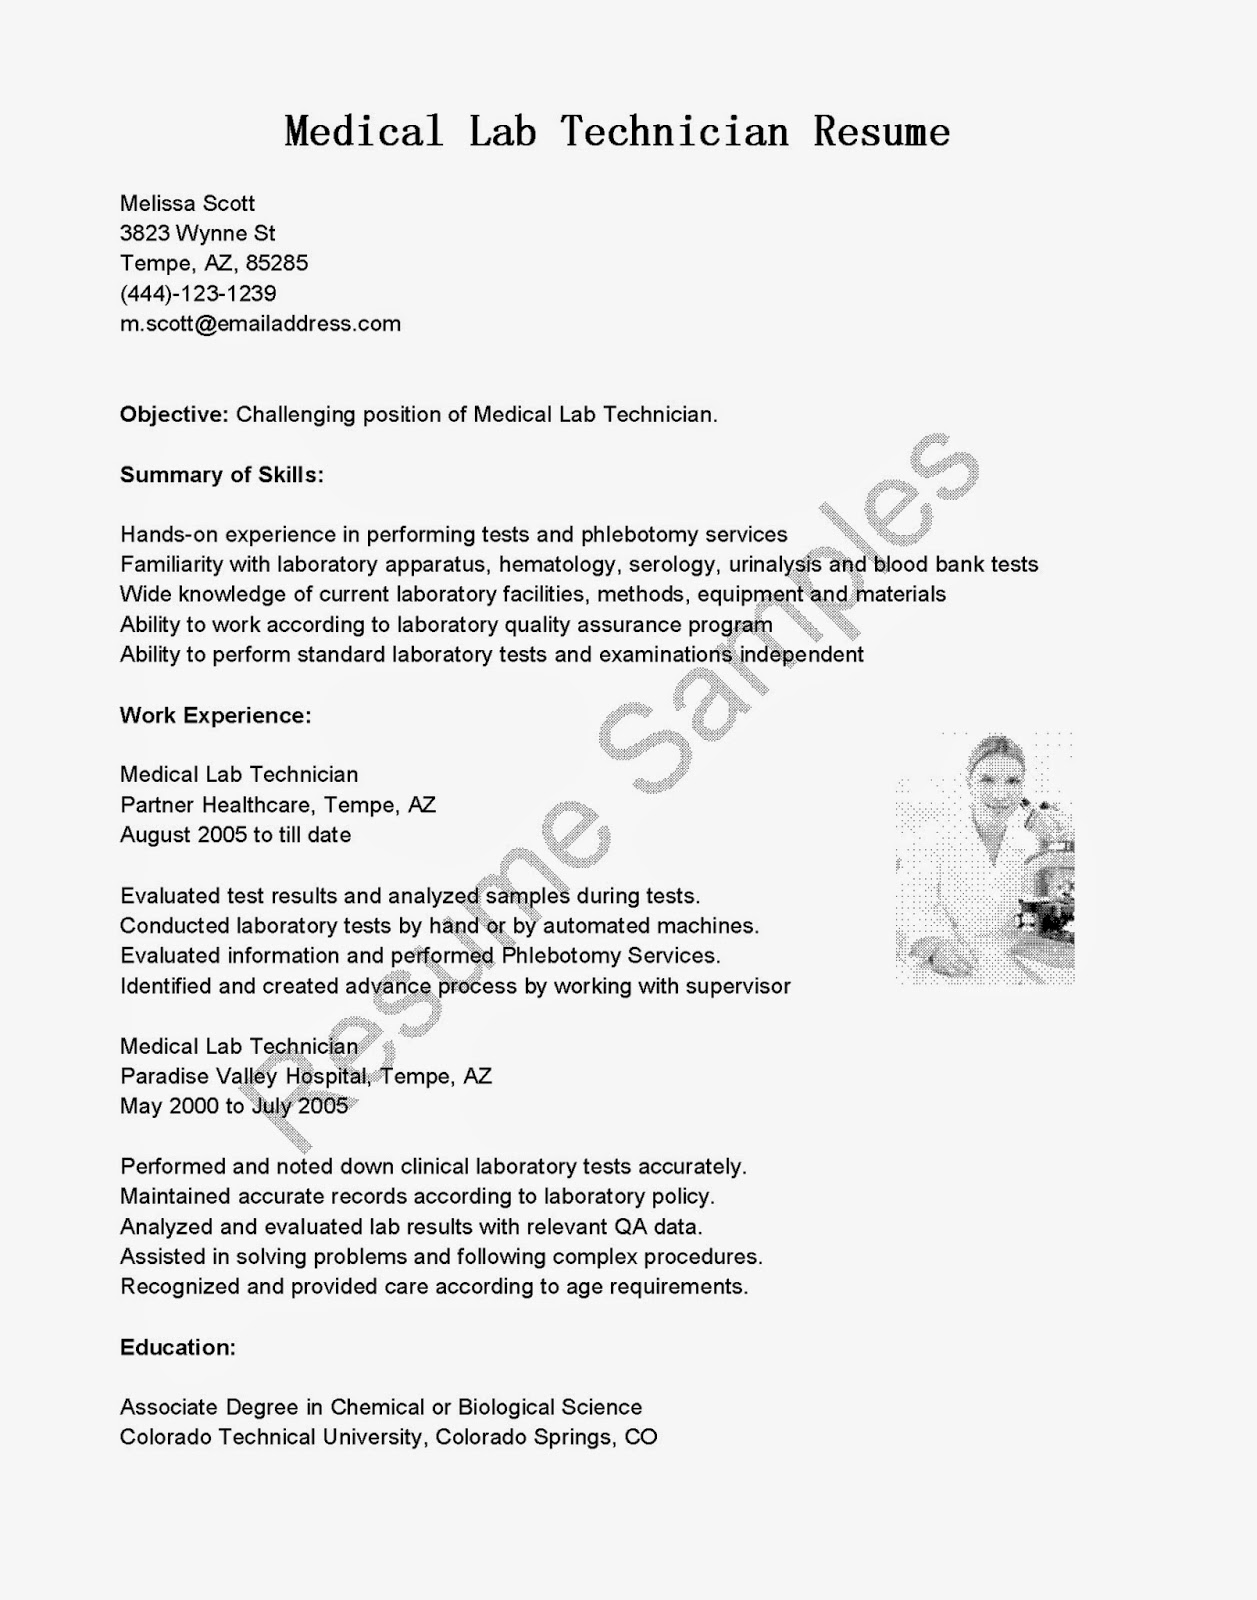 resume samples  medical lab technician resume sample